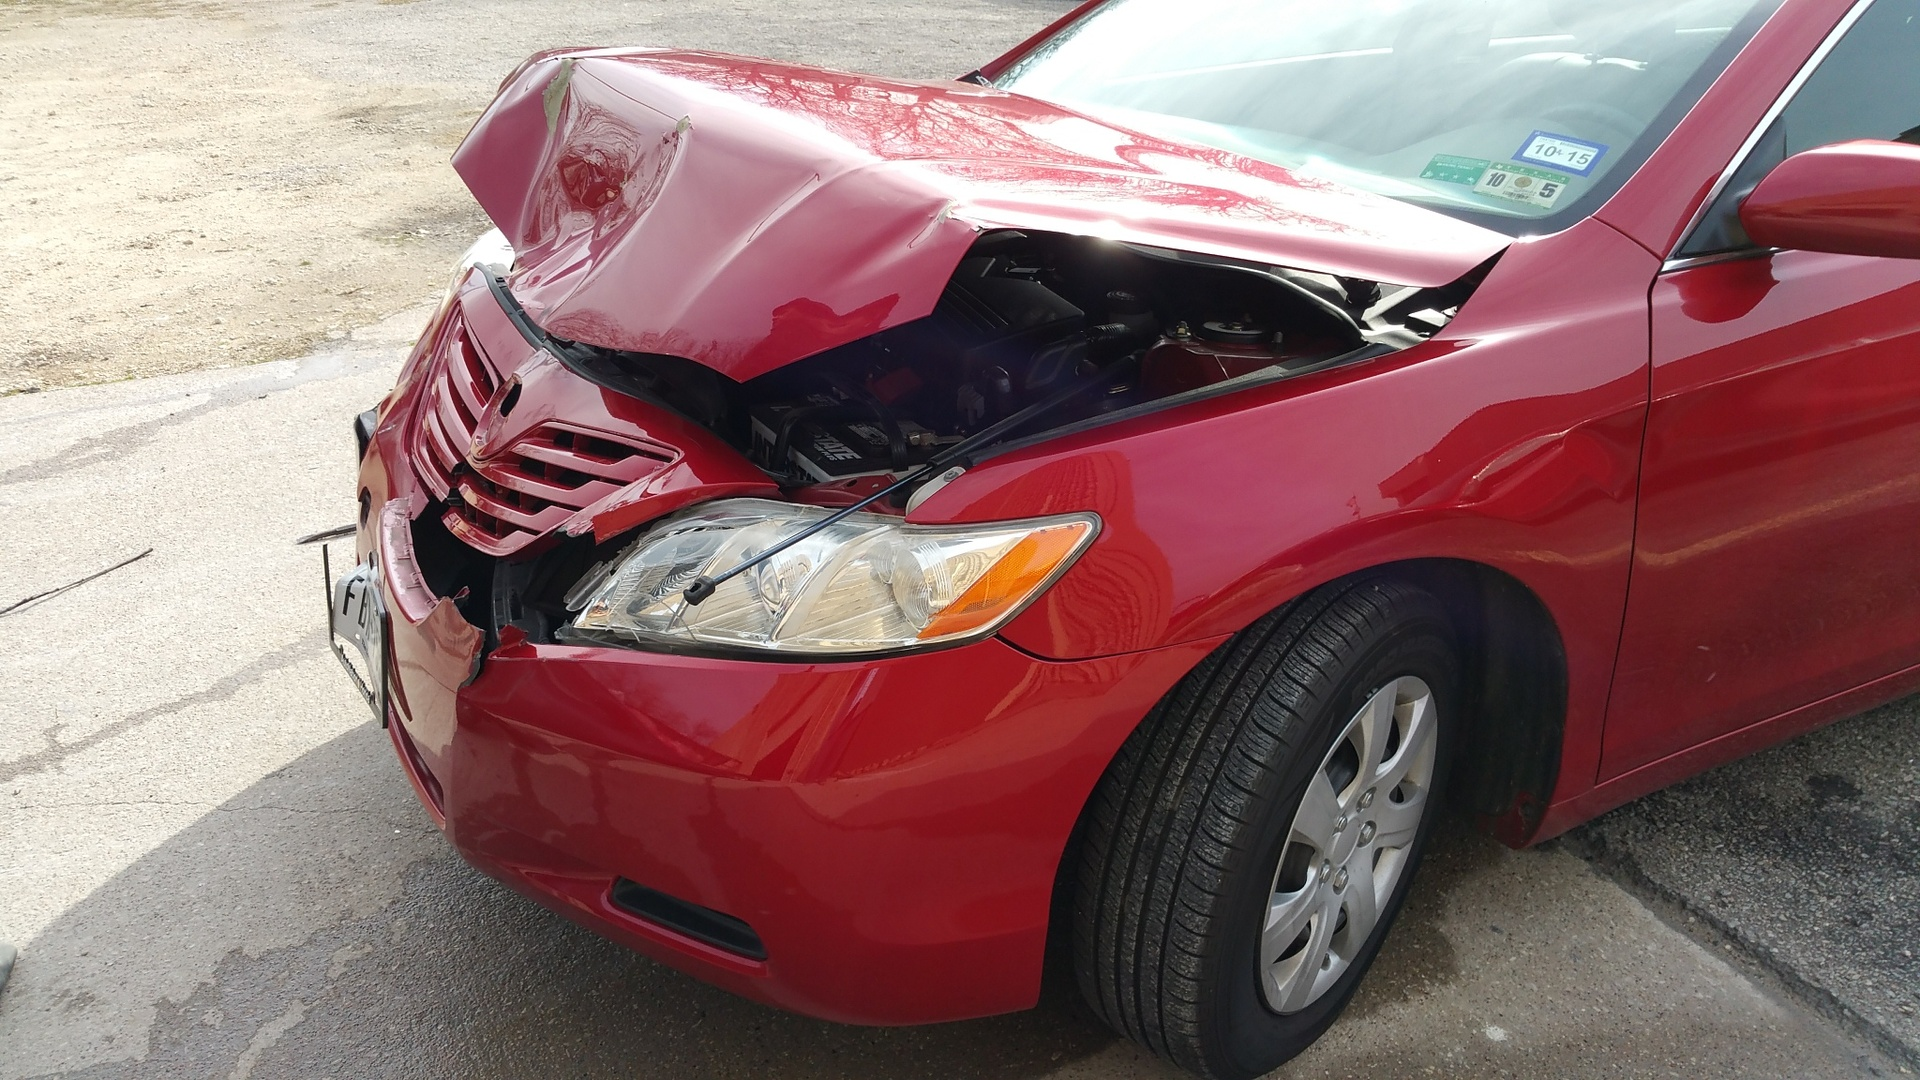 2011 Toyota Camry - Front end collision